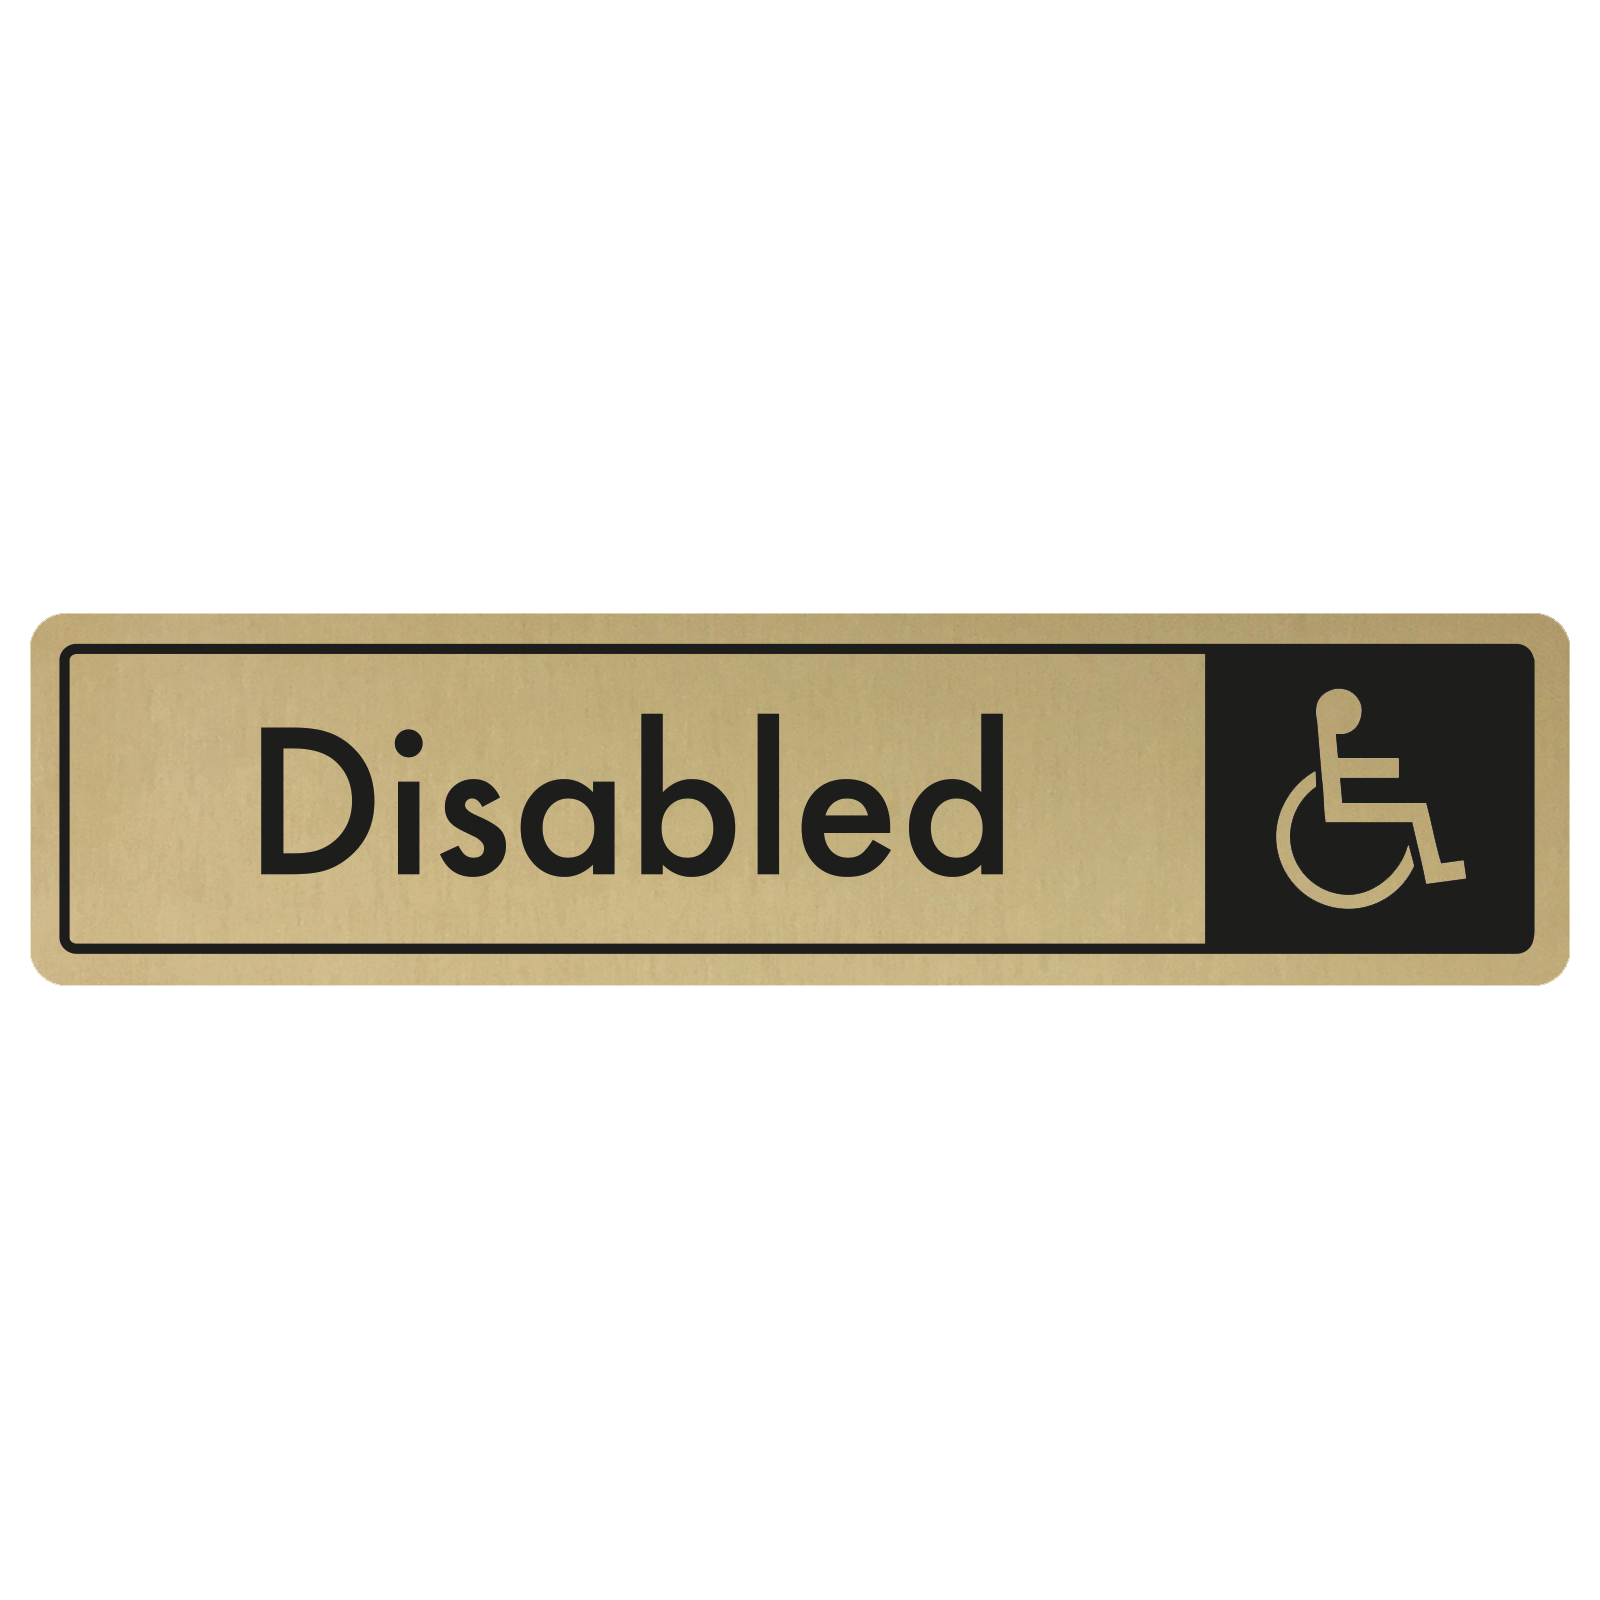 Disabled Door Sign - Black on Gold